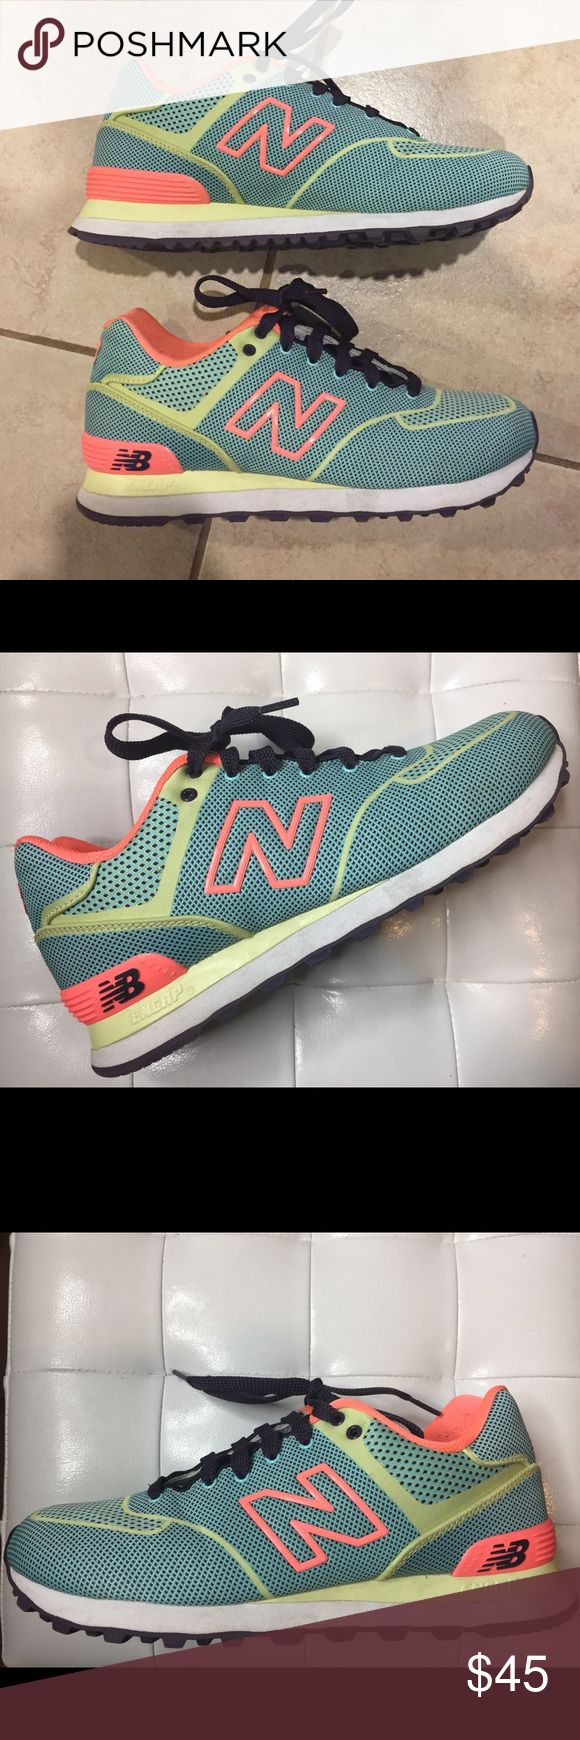 New Balance elite edition 574 women New Balance 574 Elite Edition 574 women's, gently used. Great condition. New Balance Shoes Sneakers